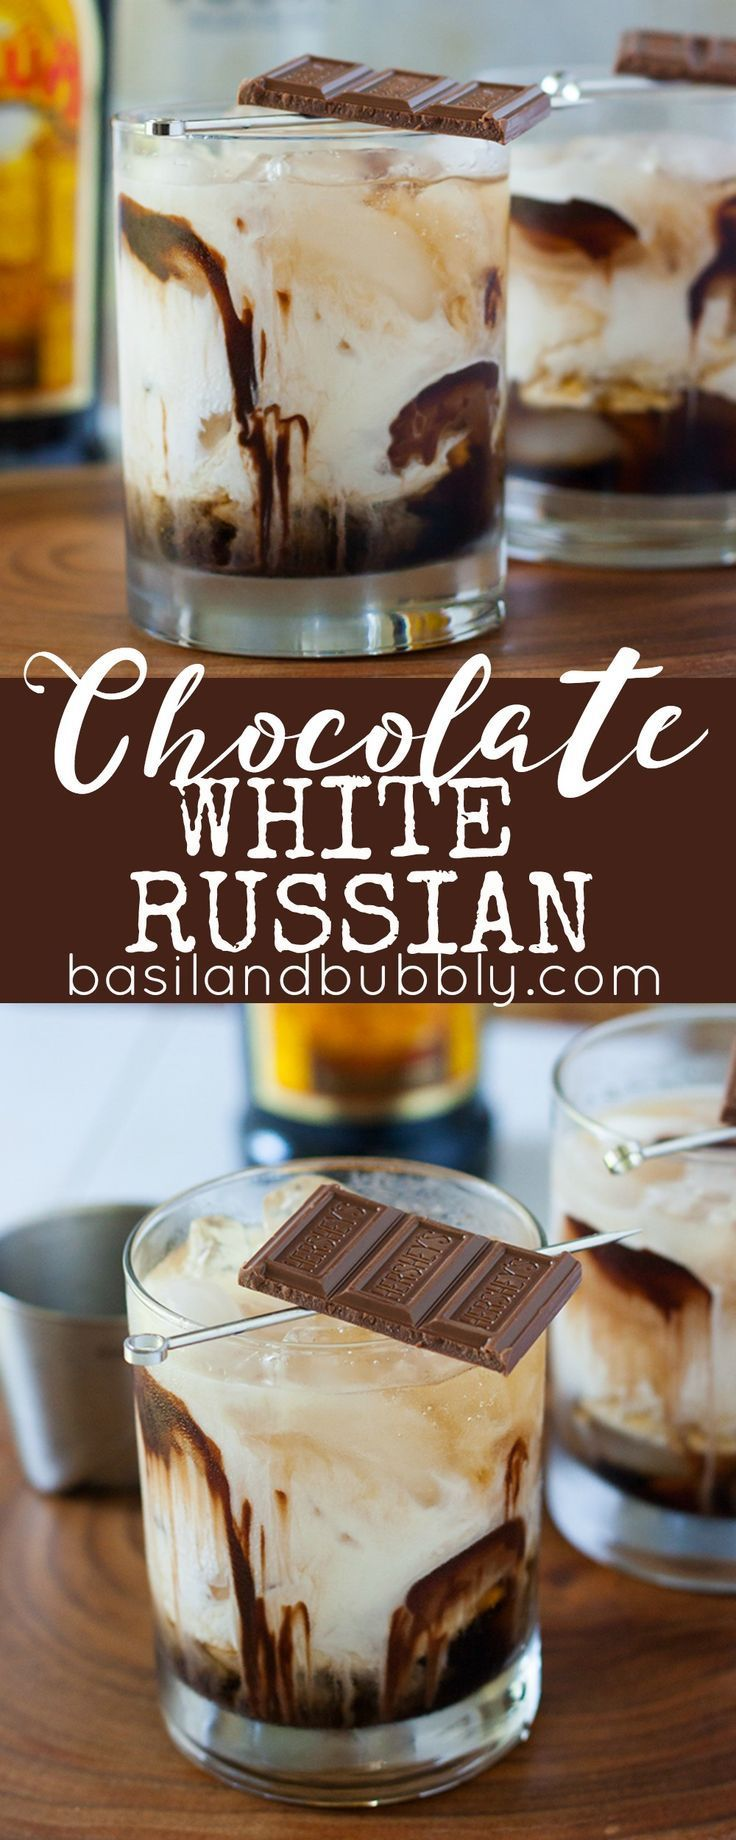 A dessert cocktail recipe everyone will love: Chocolate White Russians.  Made with Kahlua, Vodka, Cream, Chocolate Syrup, and garnished wit